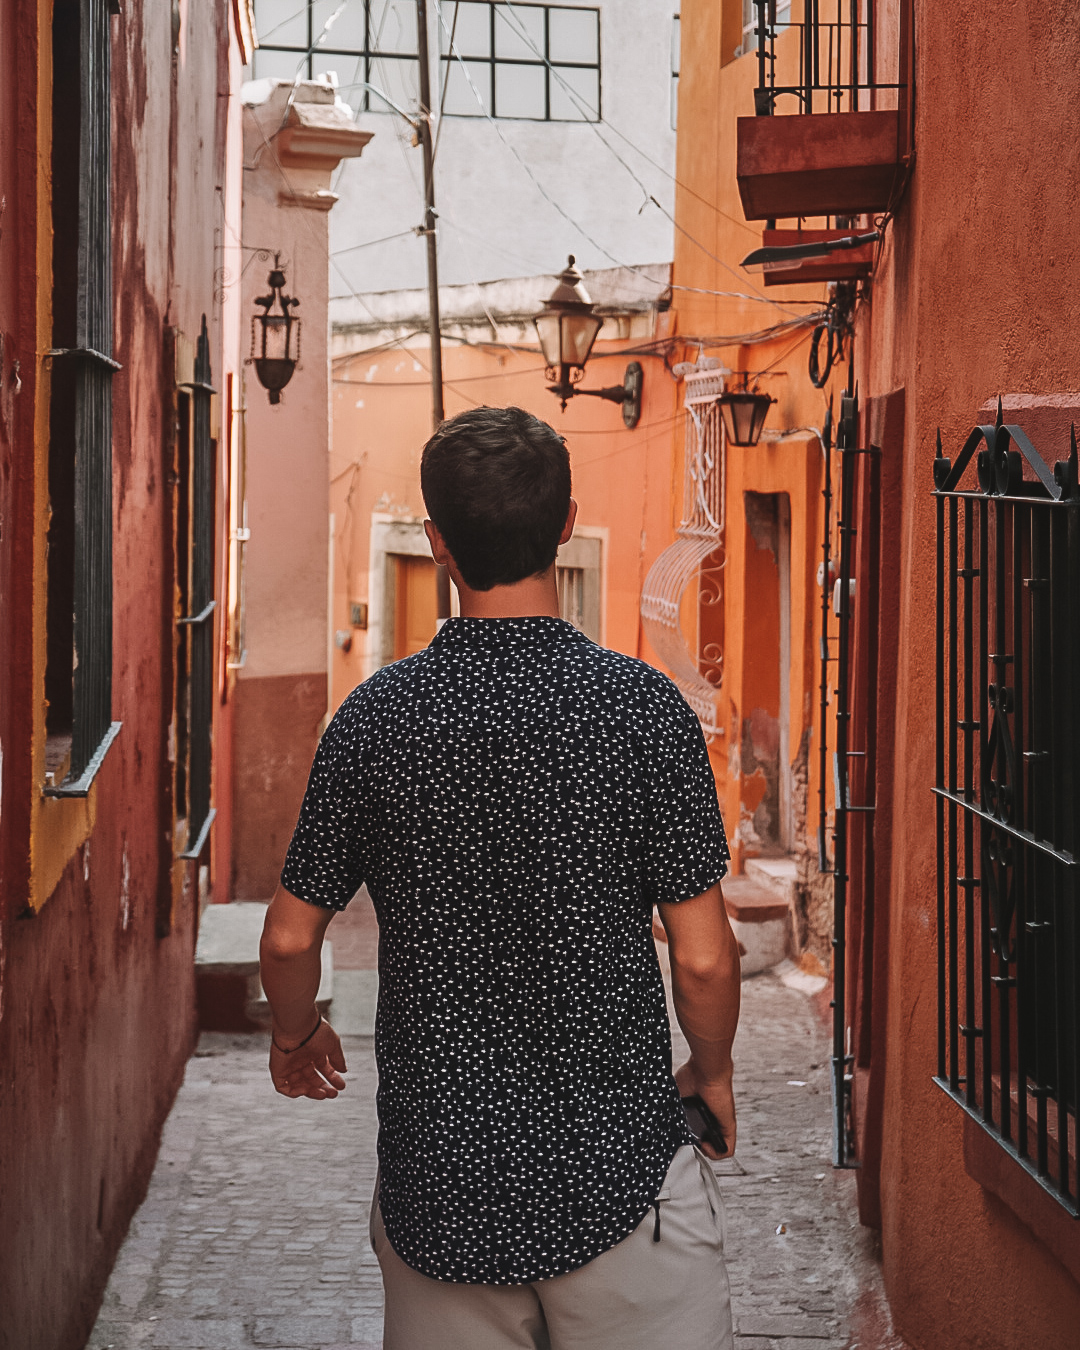 Man walking through Colorful streets in Guanajuato Mexico